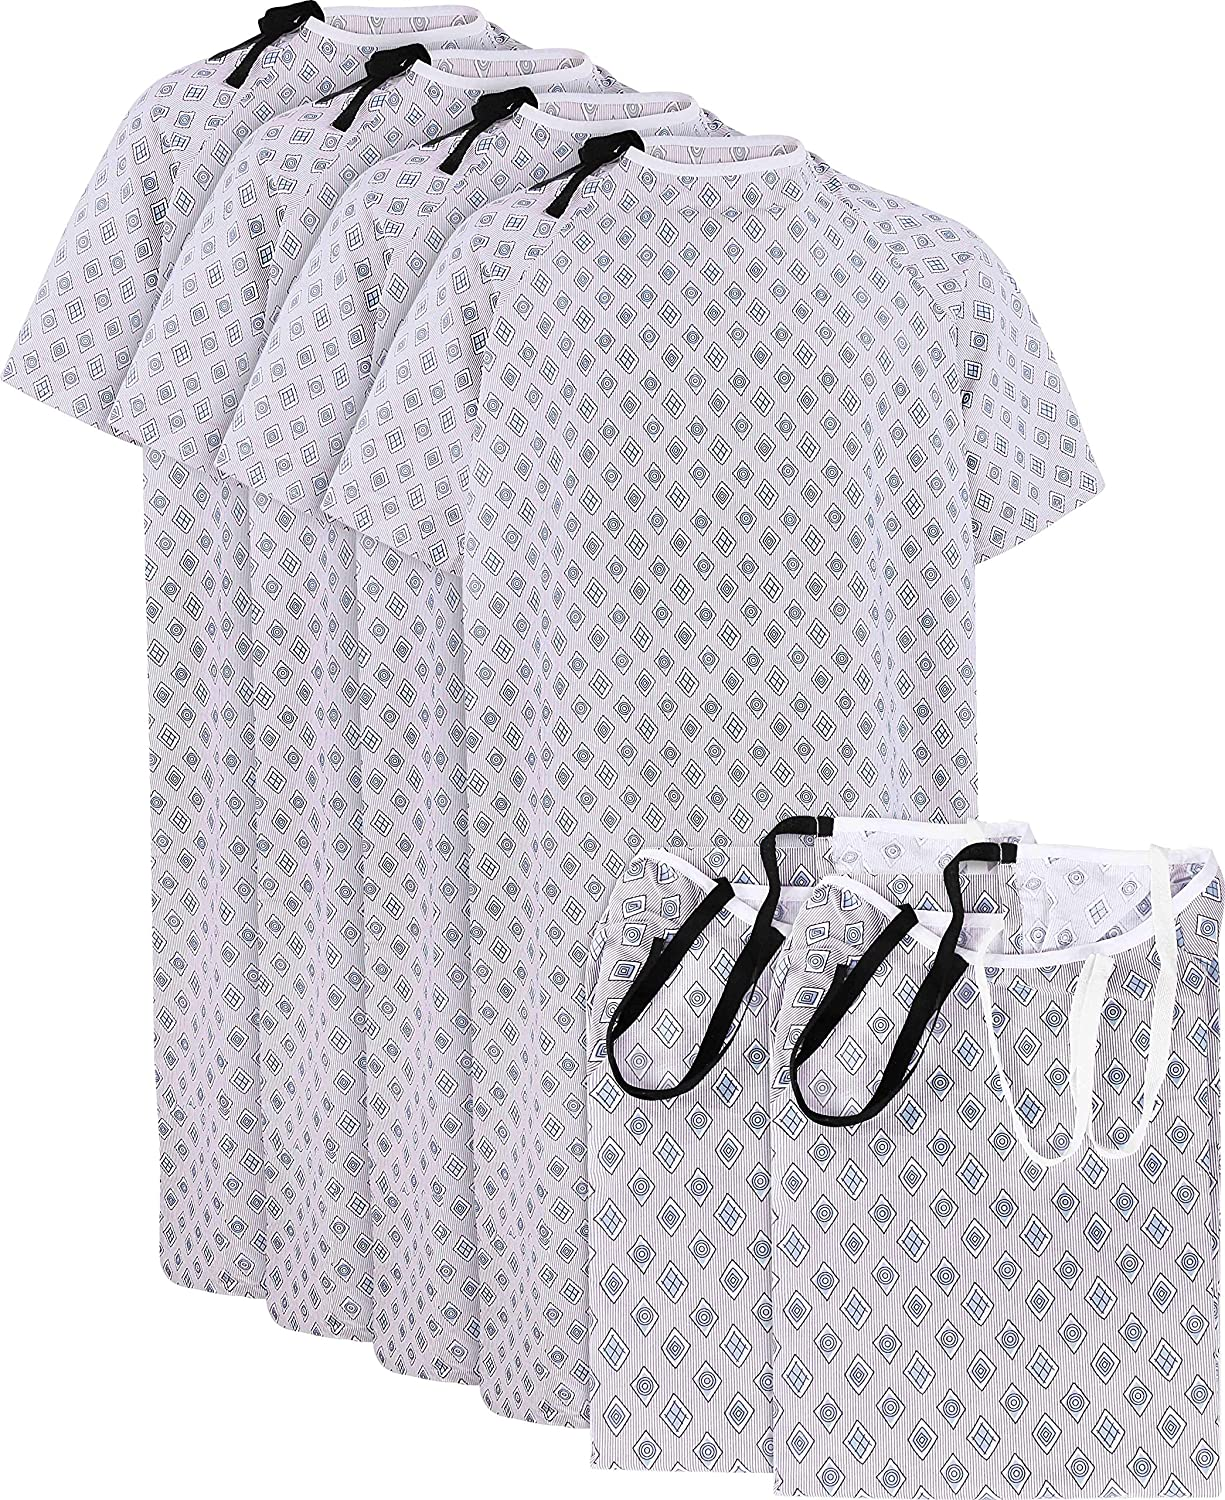 """Utopia Care 6 Pack Cotton Blend Hospital Gown, Back Tie, 45"""" Long & 61"""" Wide, Patient Gowns Comfortably Fits Sizes up to 2XL"""